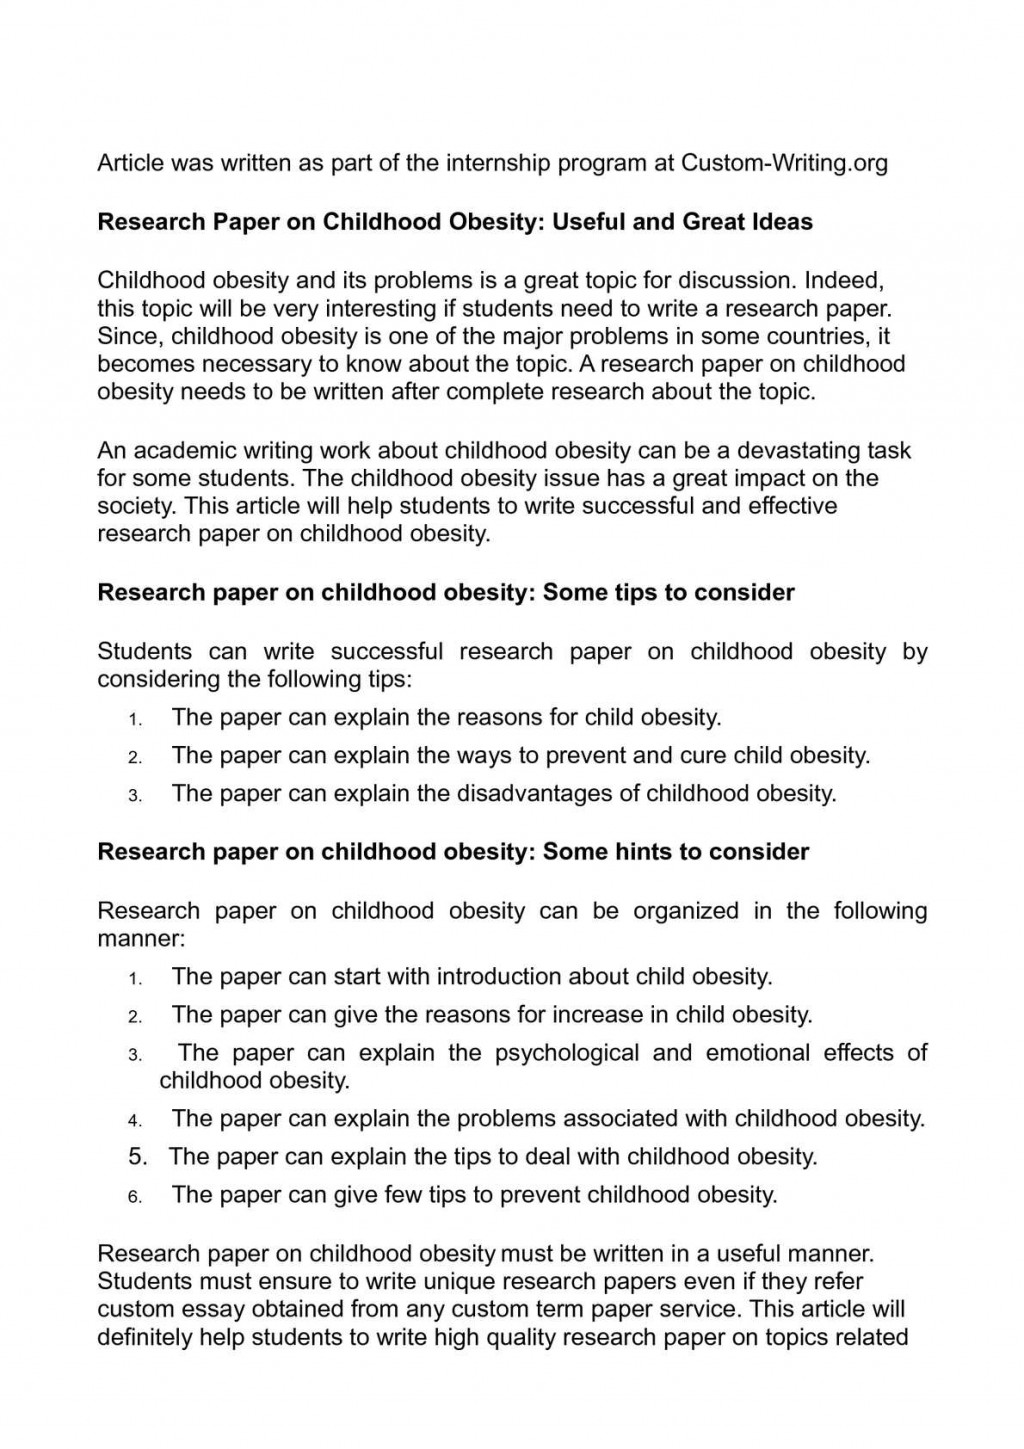 001 Childhood Obesity Research Paper Thesis Statement Fantastic Large